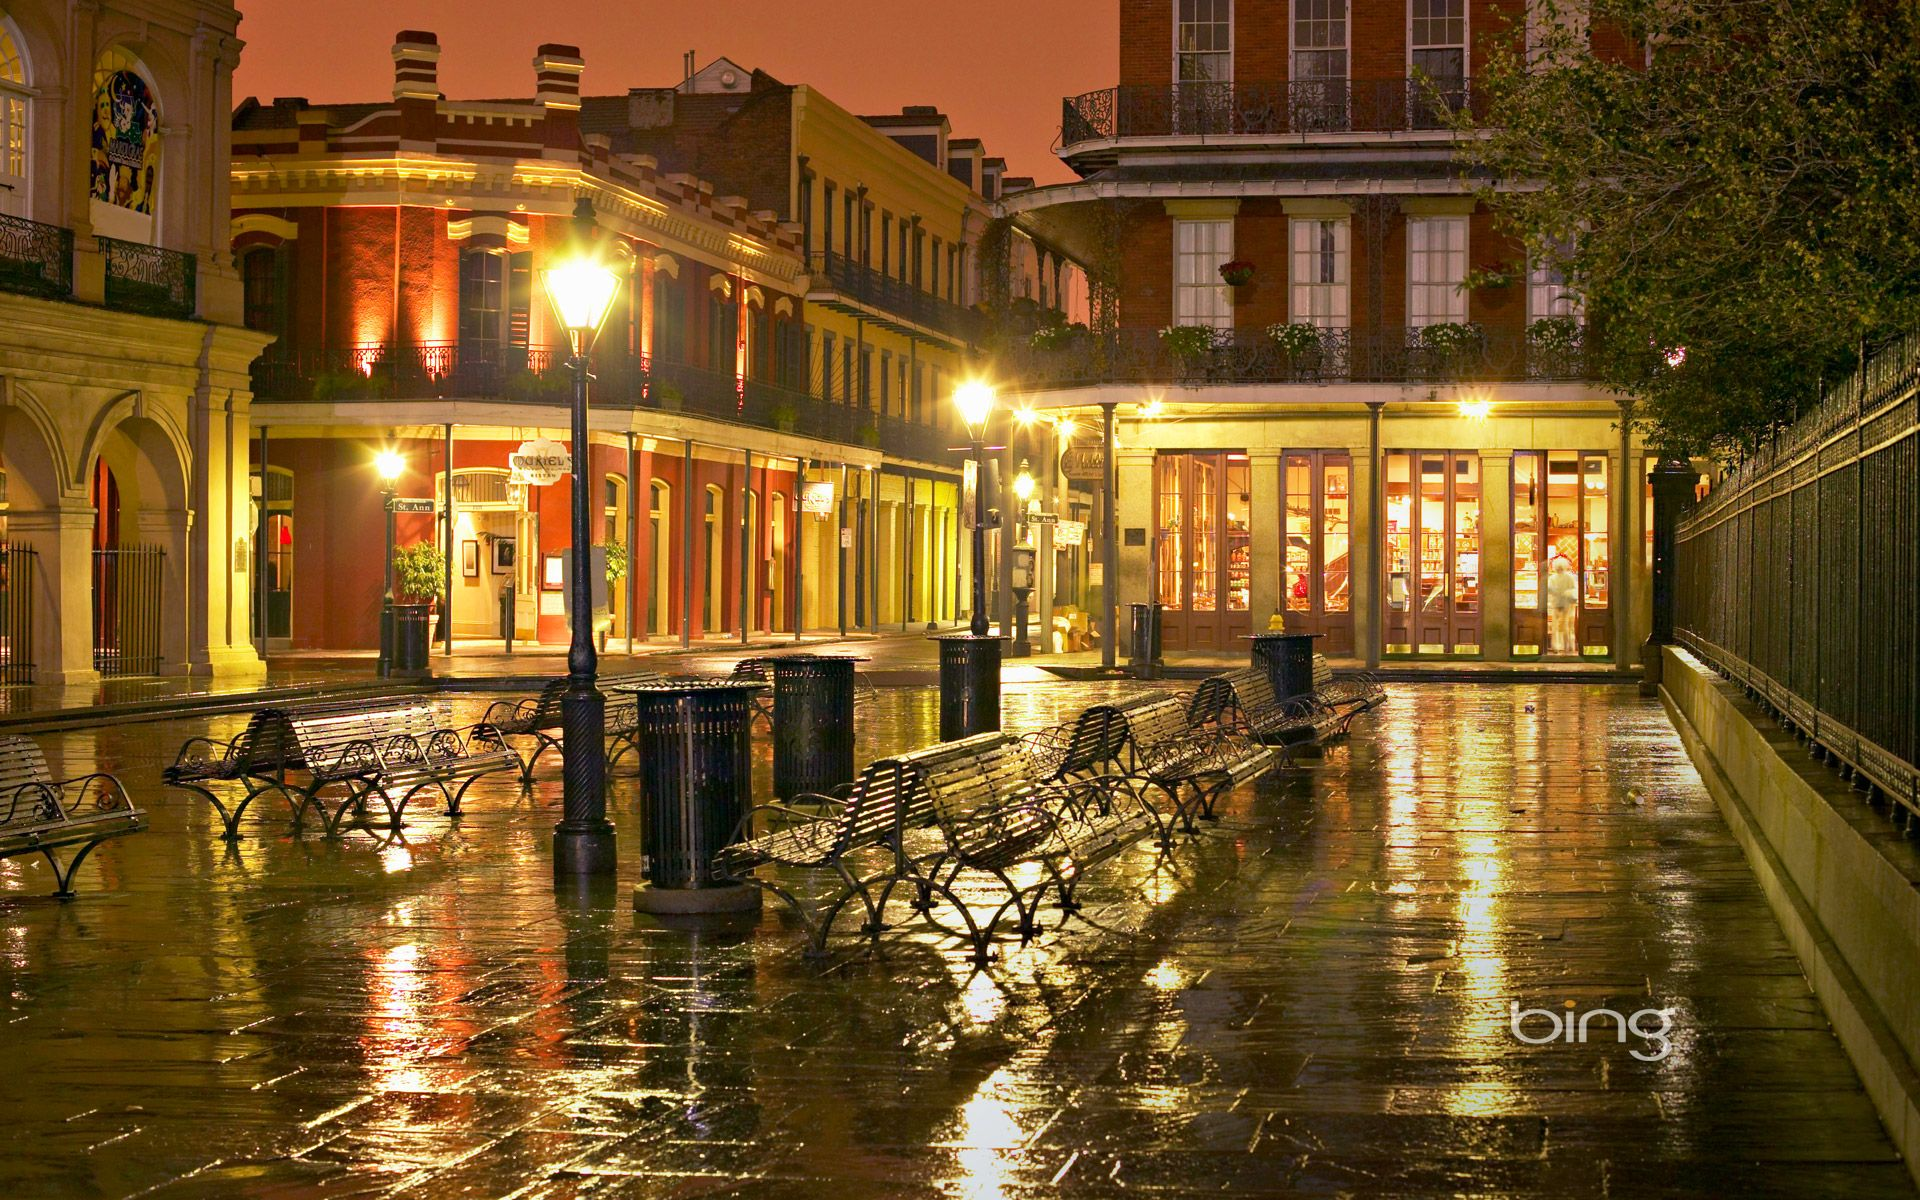 bings newest images french quarter in new orleans louisiana 1920x1200